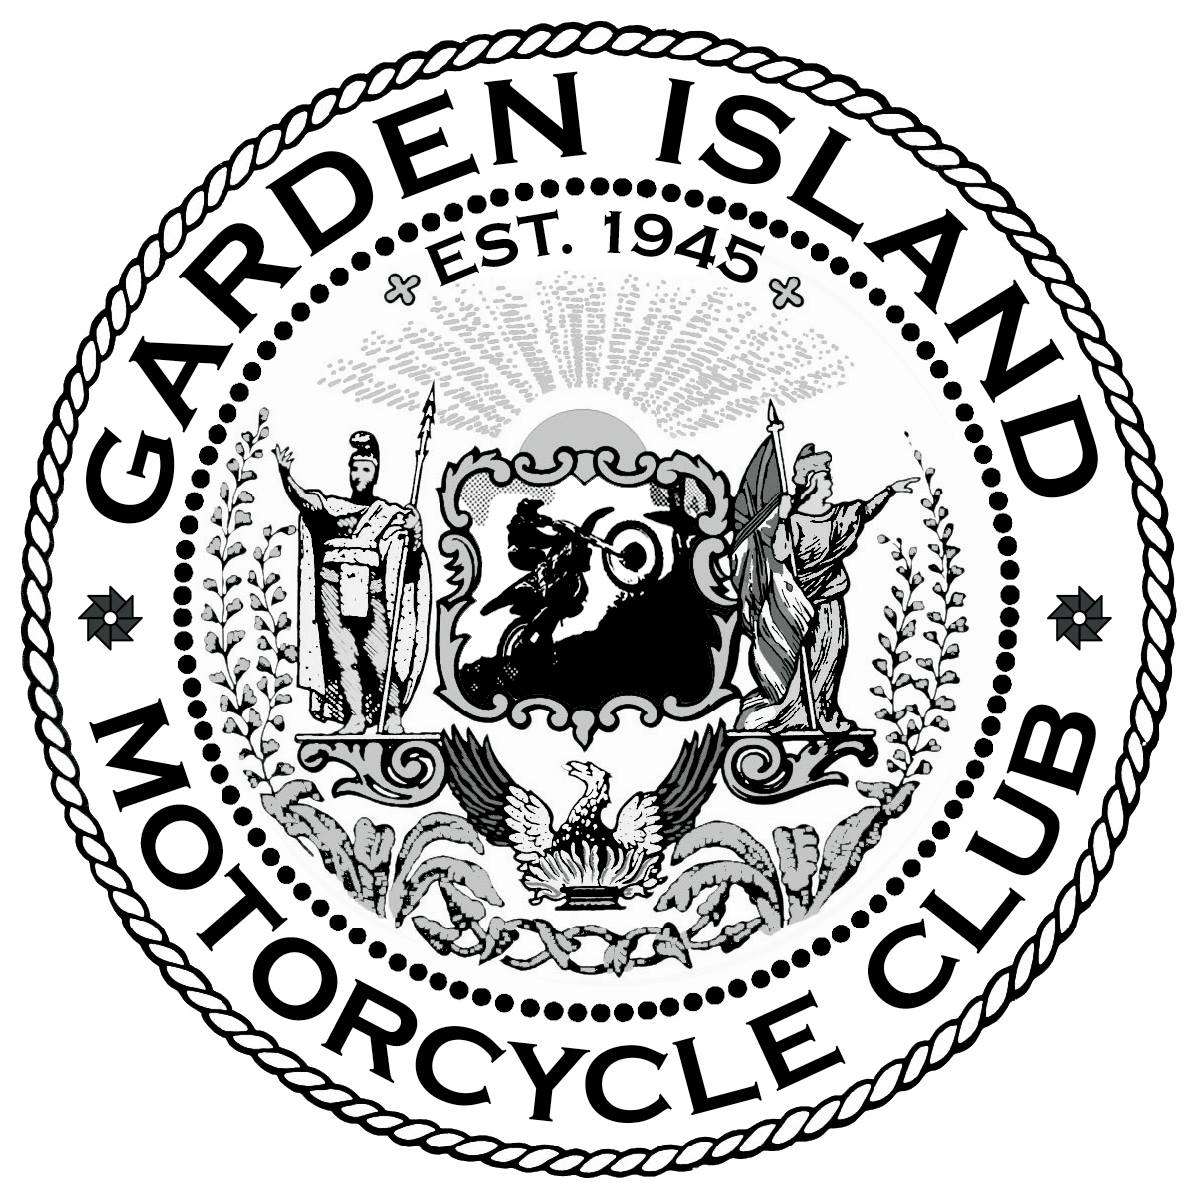 Garden Island Motorcycle Club